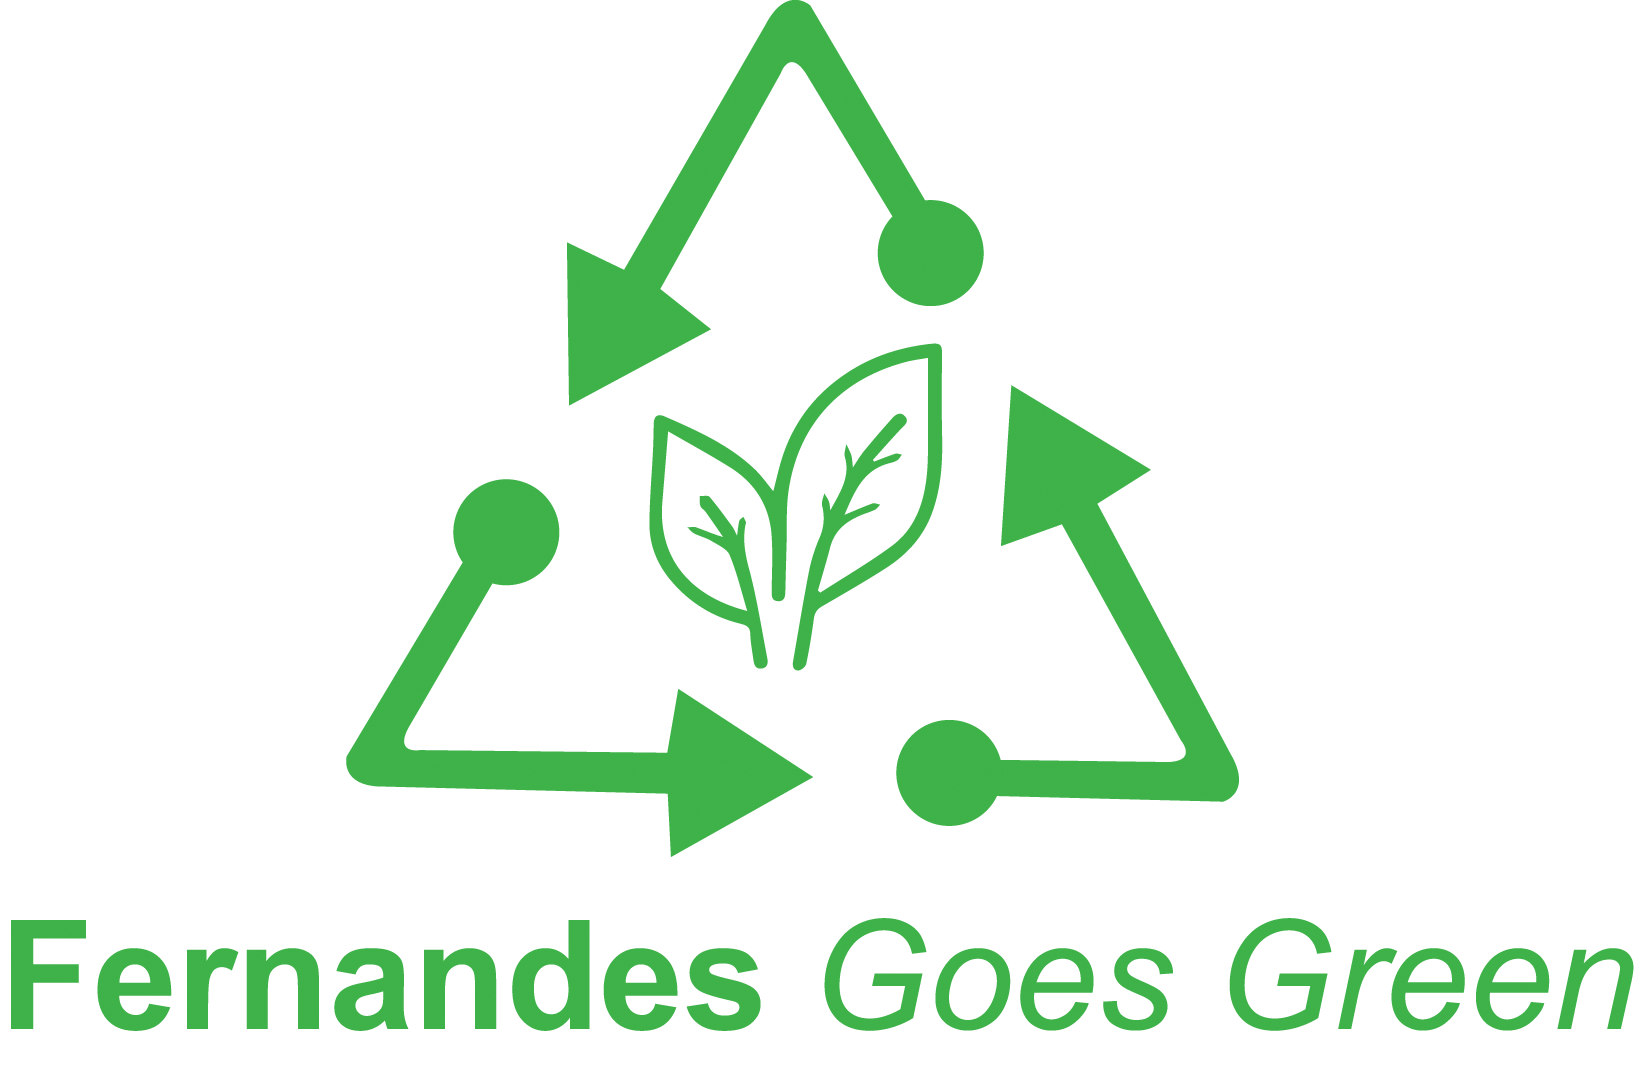 Fernandes Goes Green